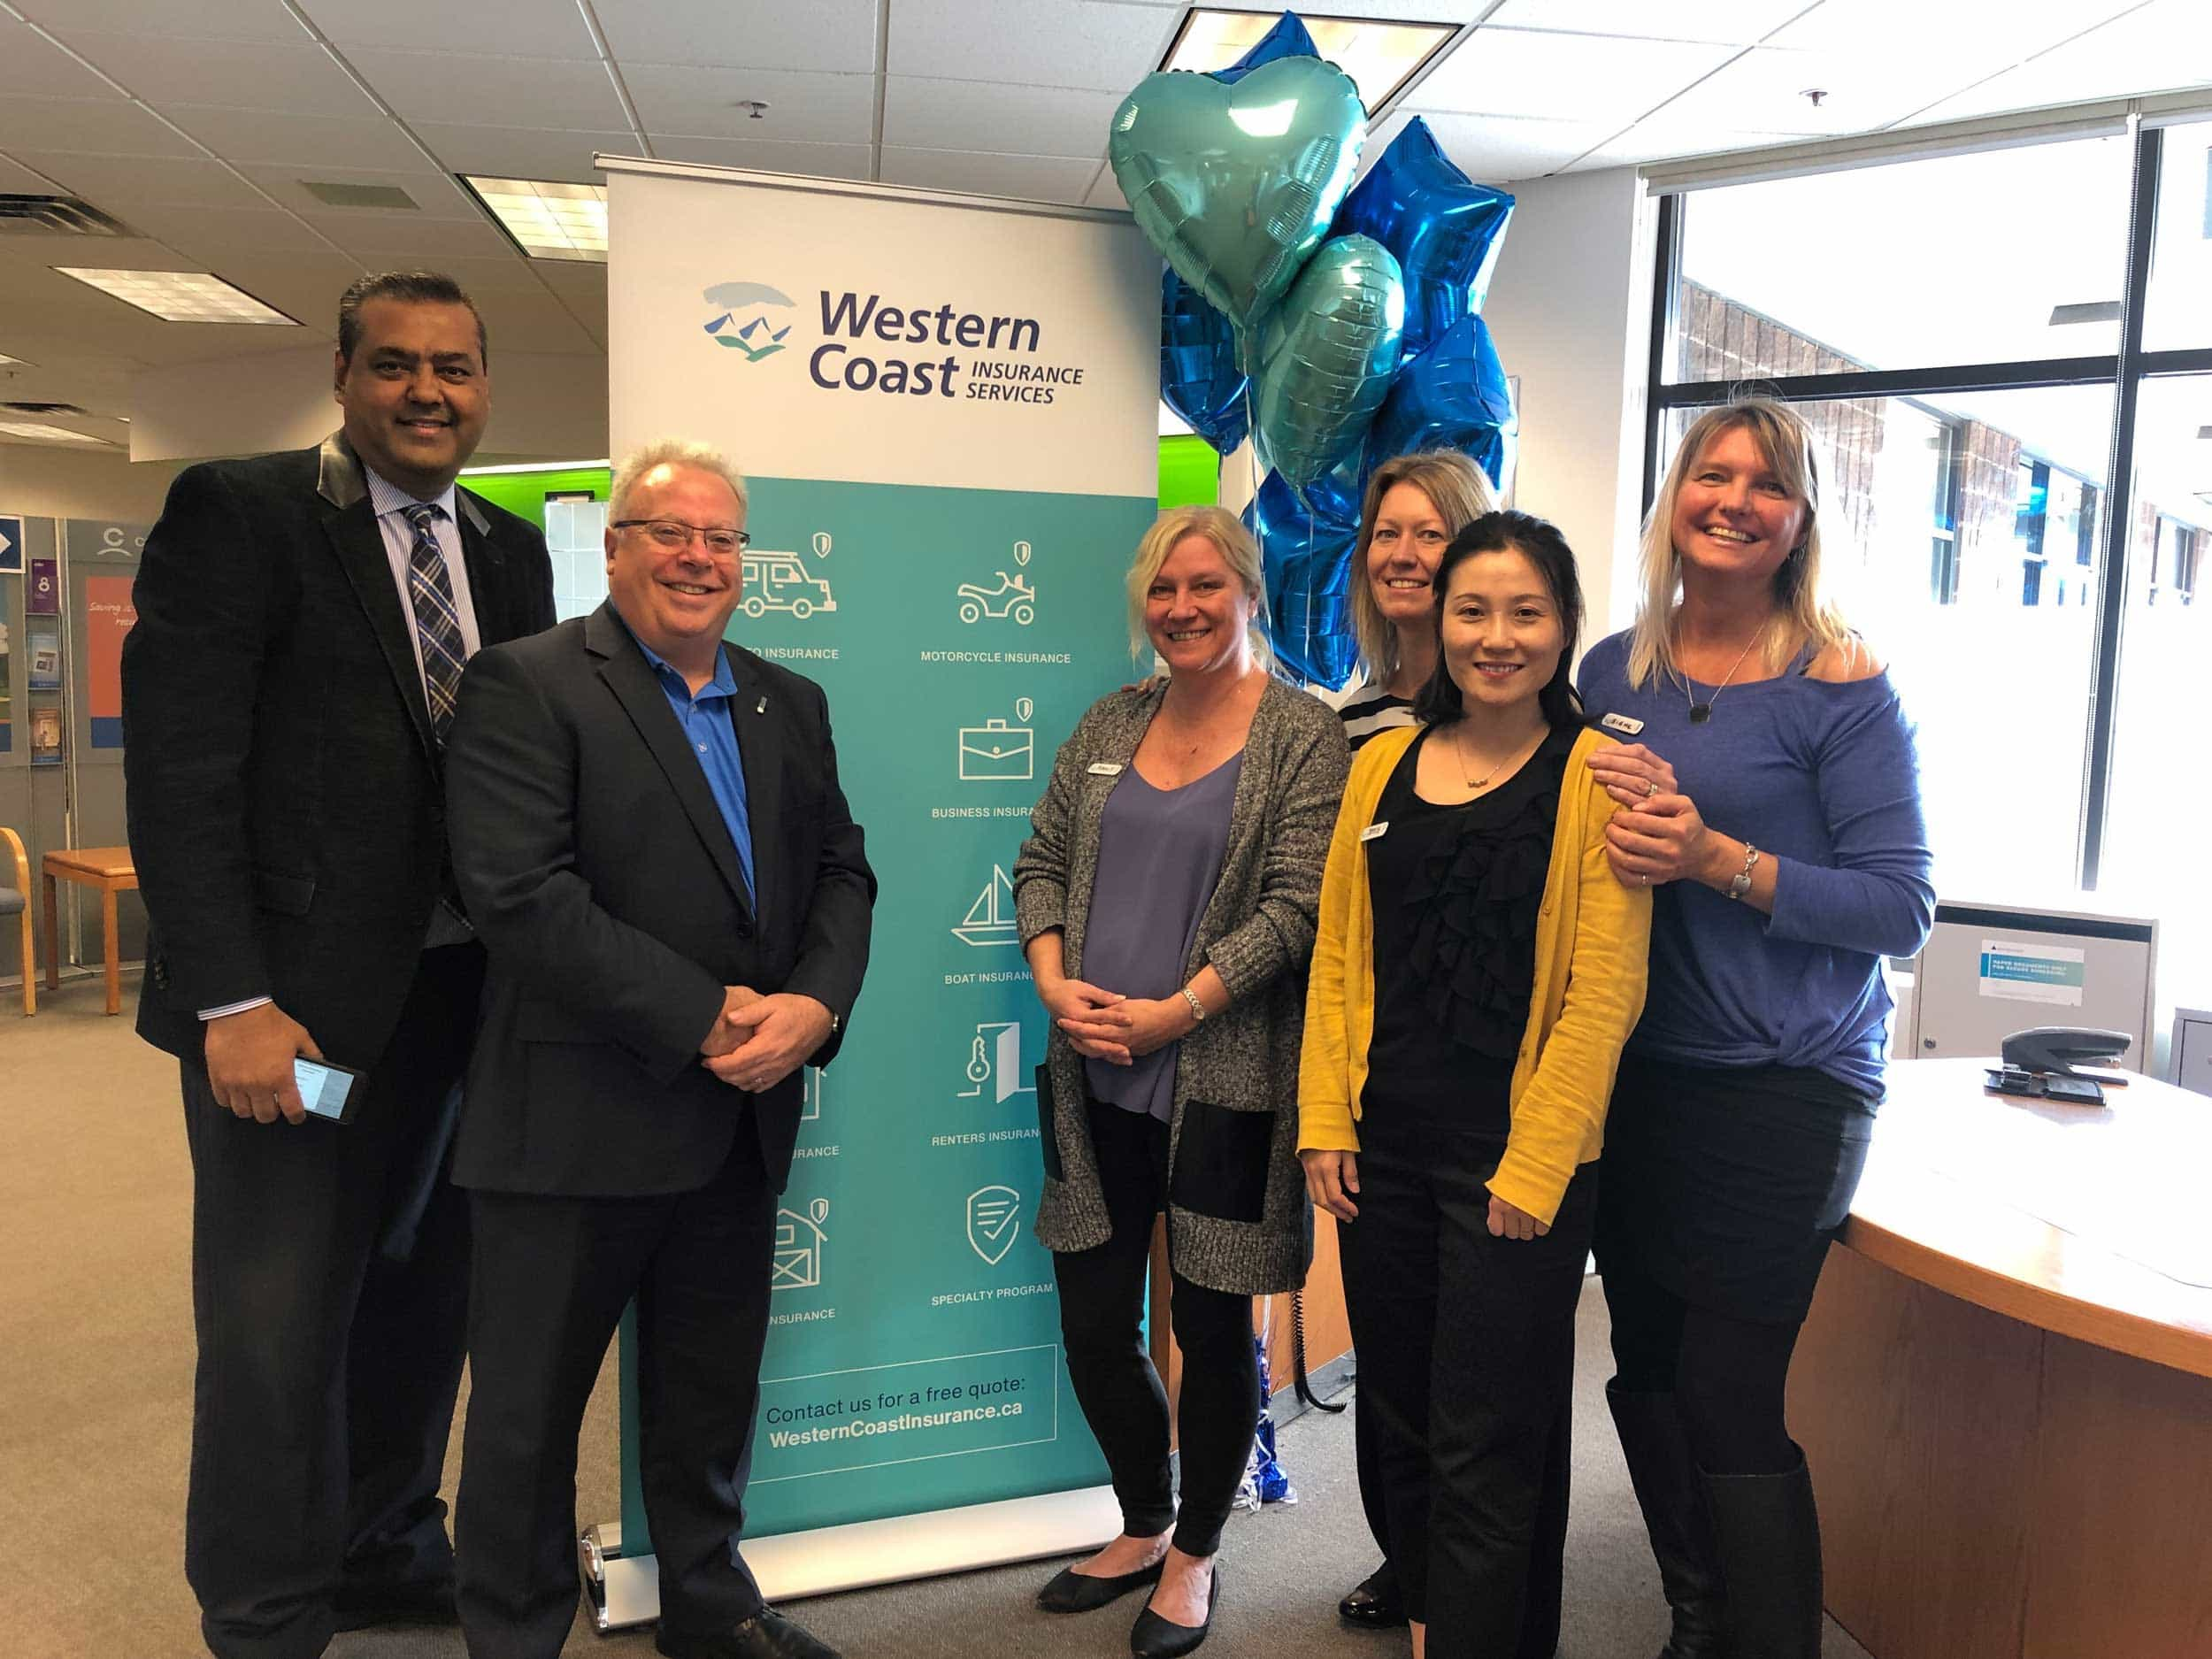 Kenny Nicholls, Western Financial Group's CEO and President, visits our Western Coast Semiahmoo location on brand reveal day